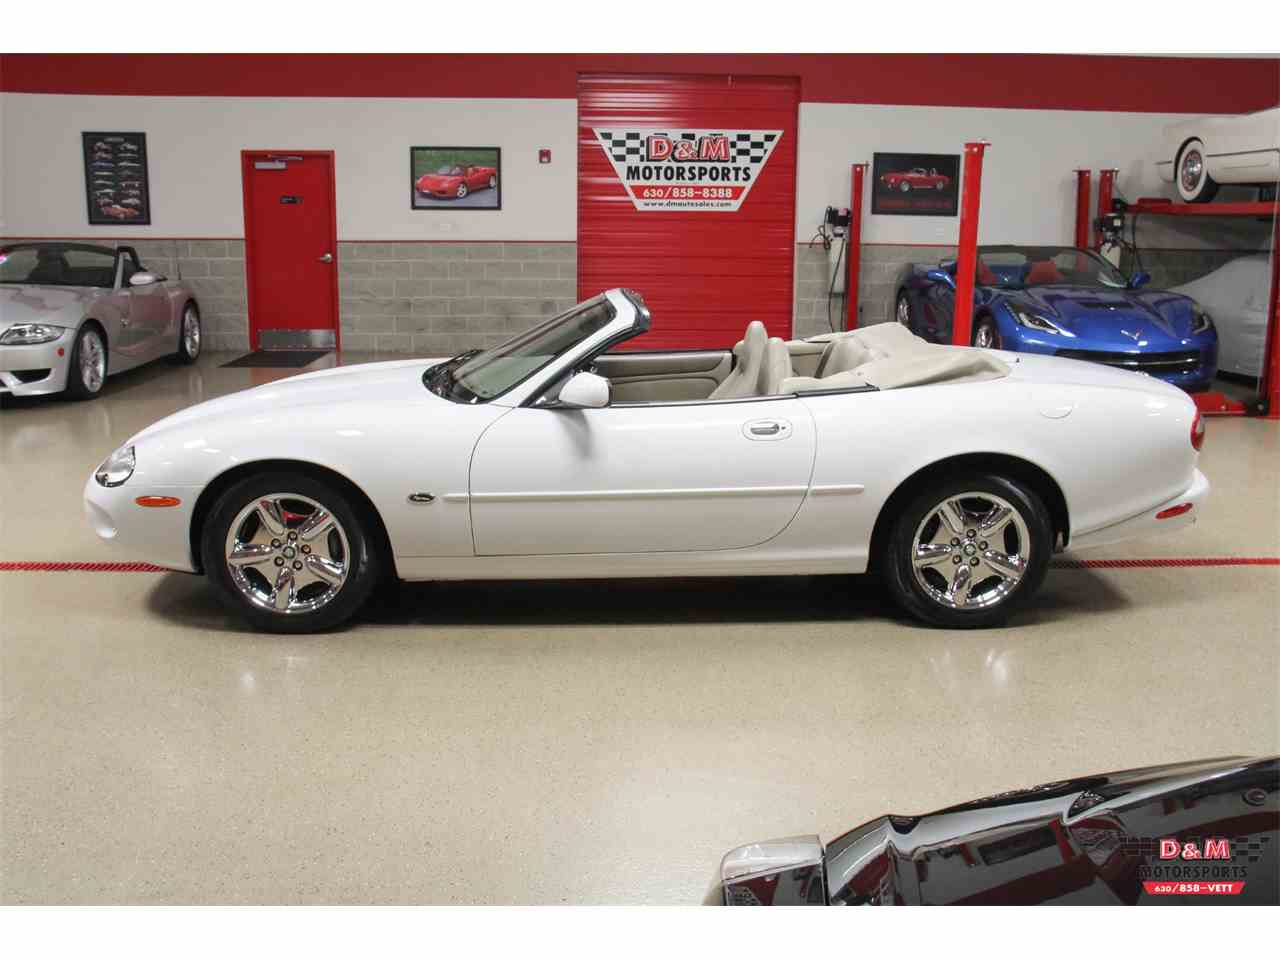 Large Picture of 1998 Jaguar XK8 - $16,995.00 Offered by D & M Motorsports - MCA6